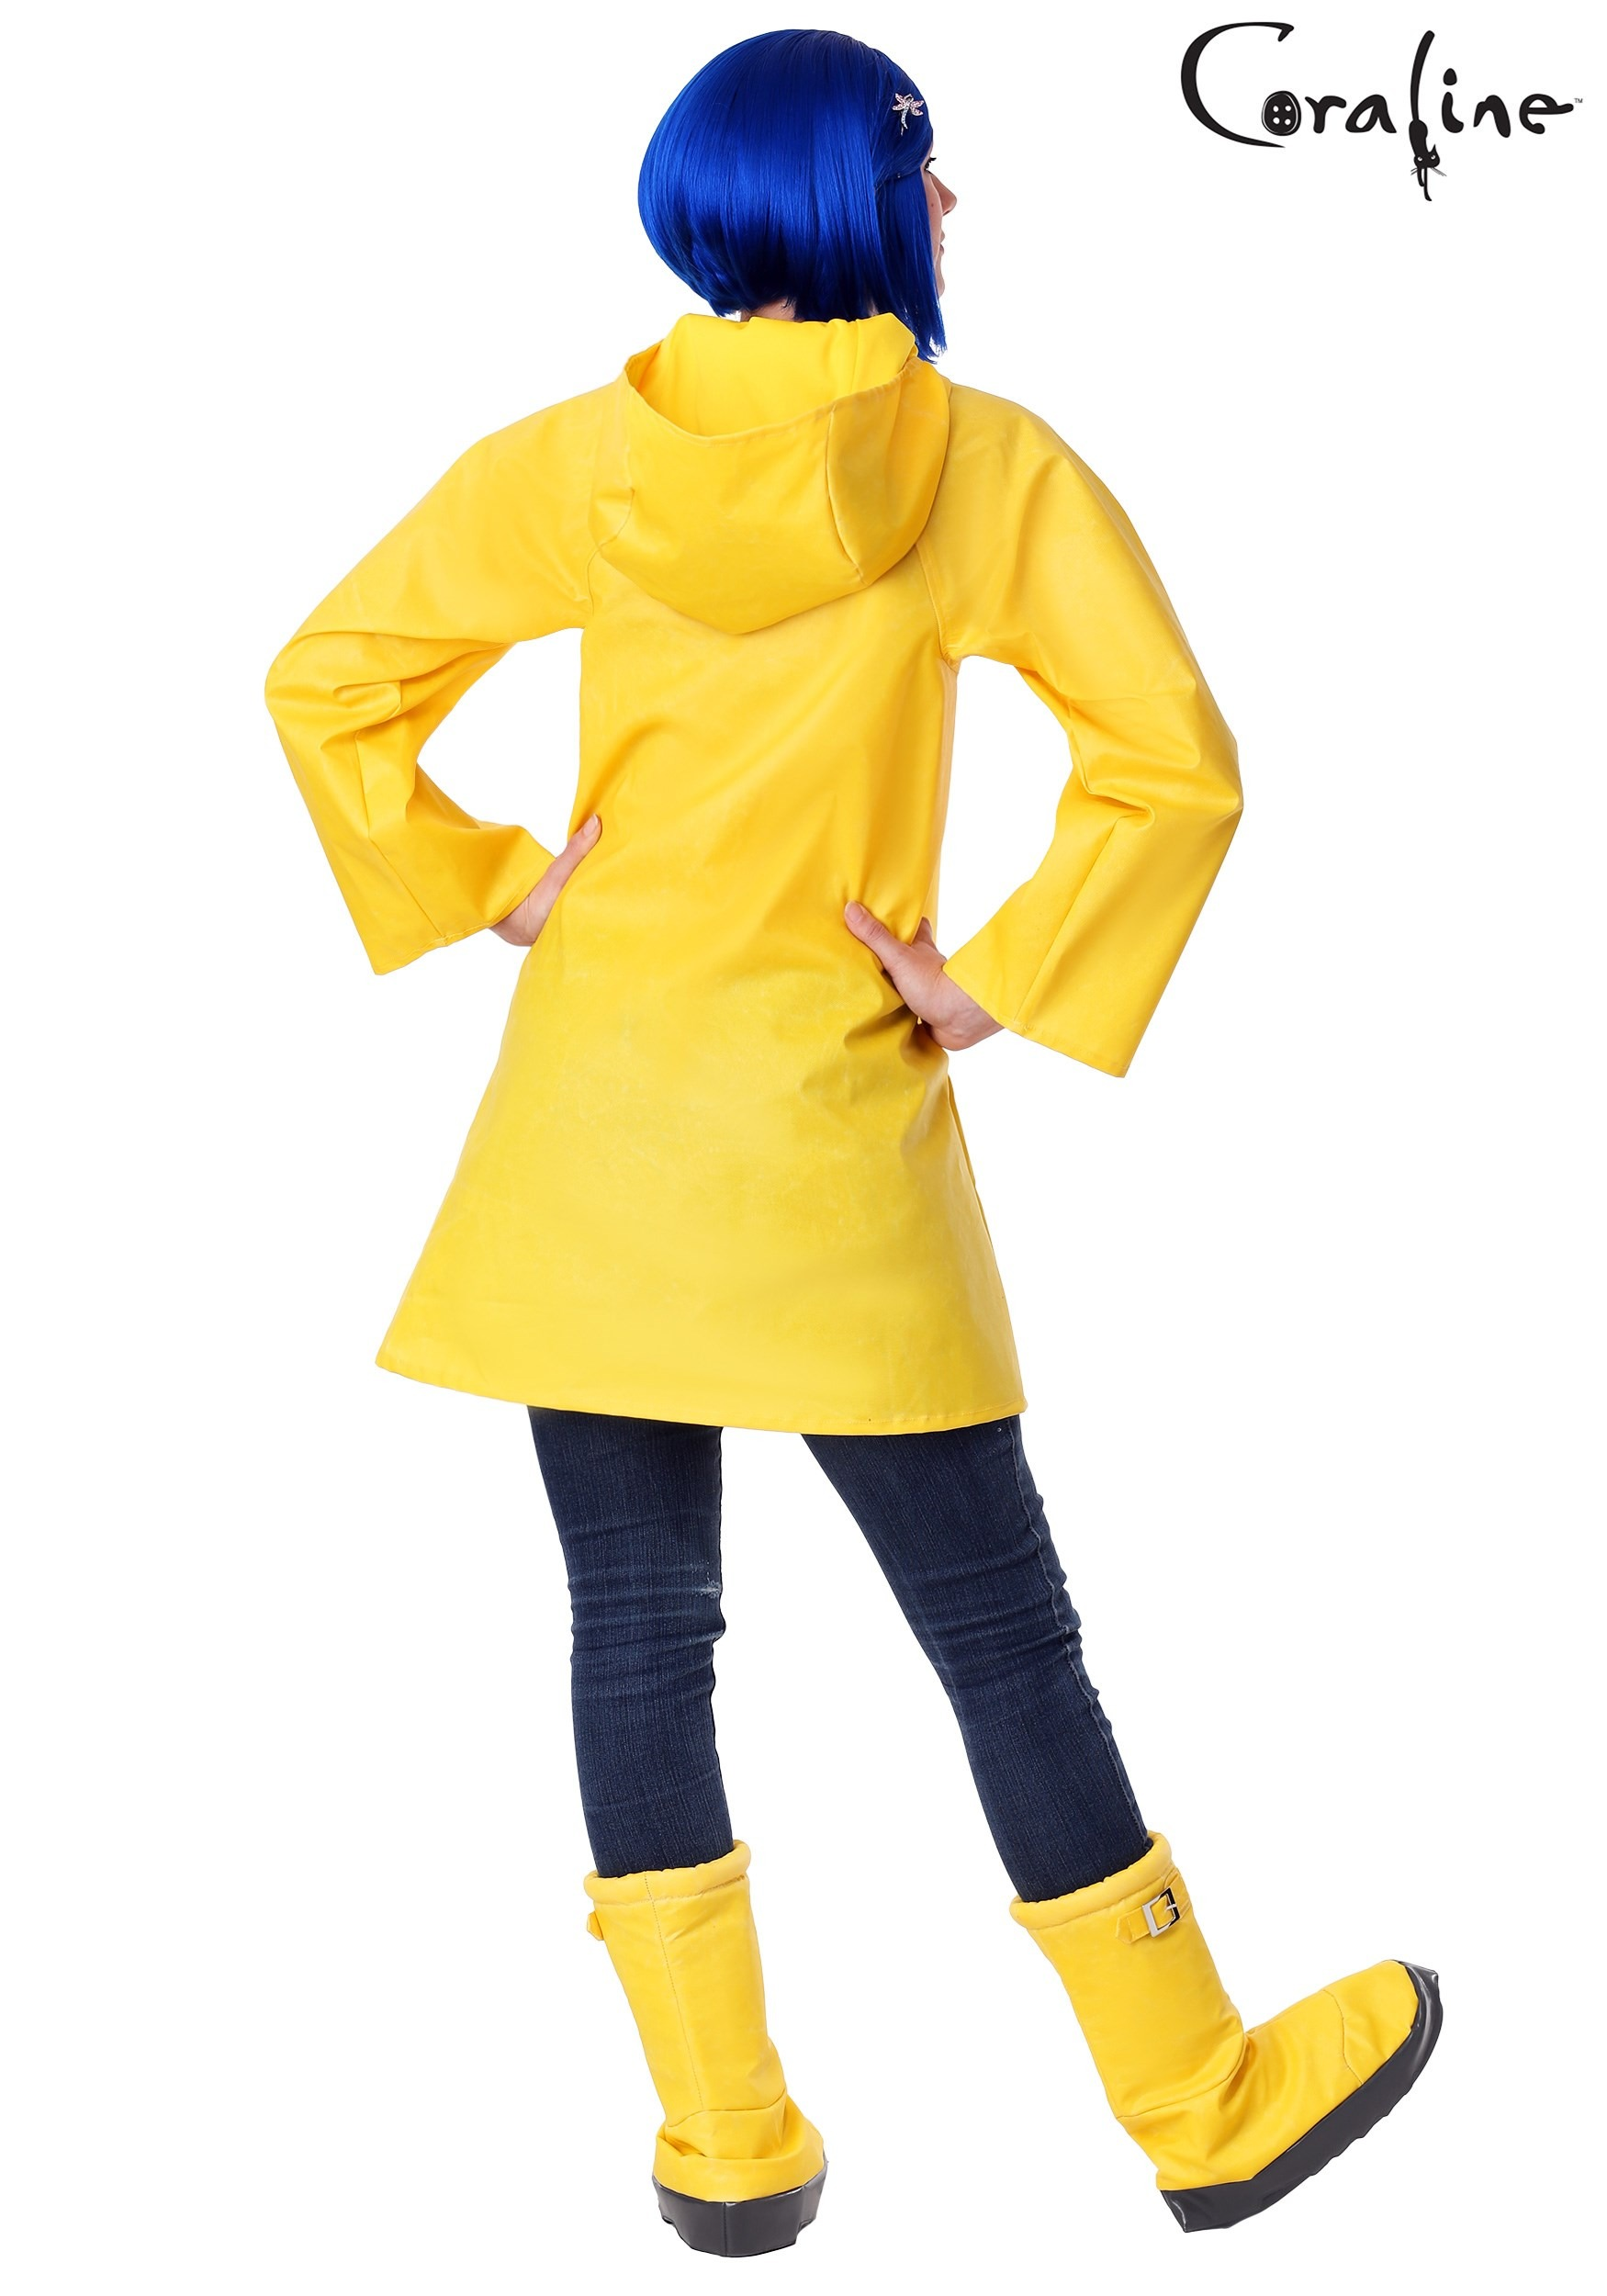 Coraline Adult Plus Size Costume